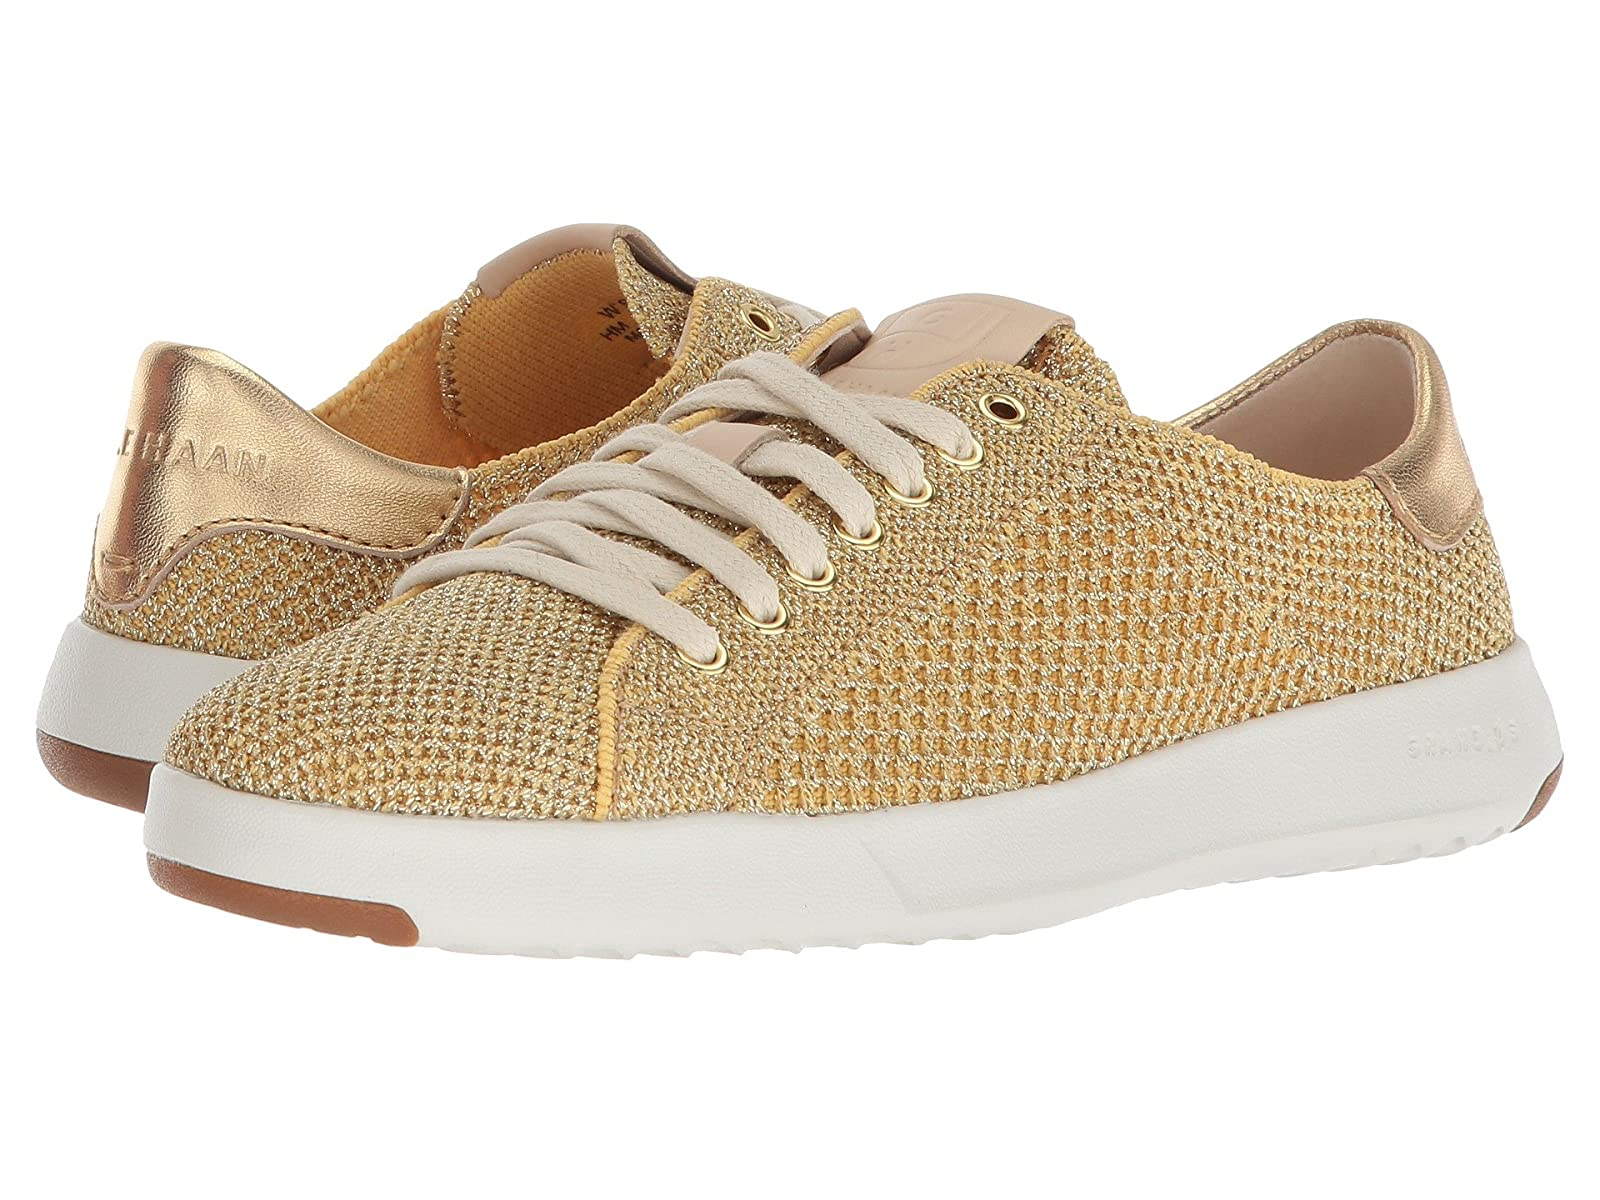 Cole Haan Grandpro Tennis StitchliteCheap and distinctive eye-catching shoes